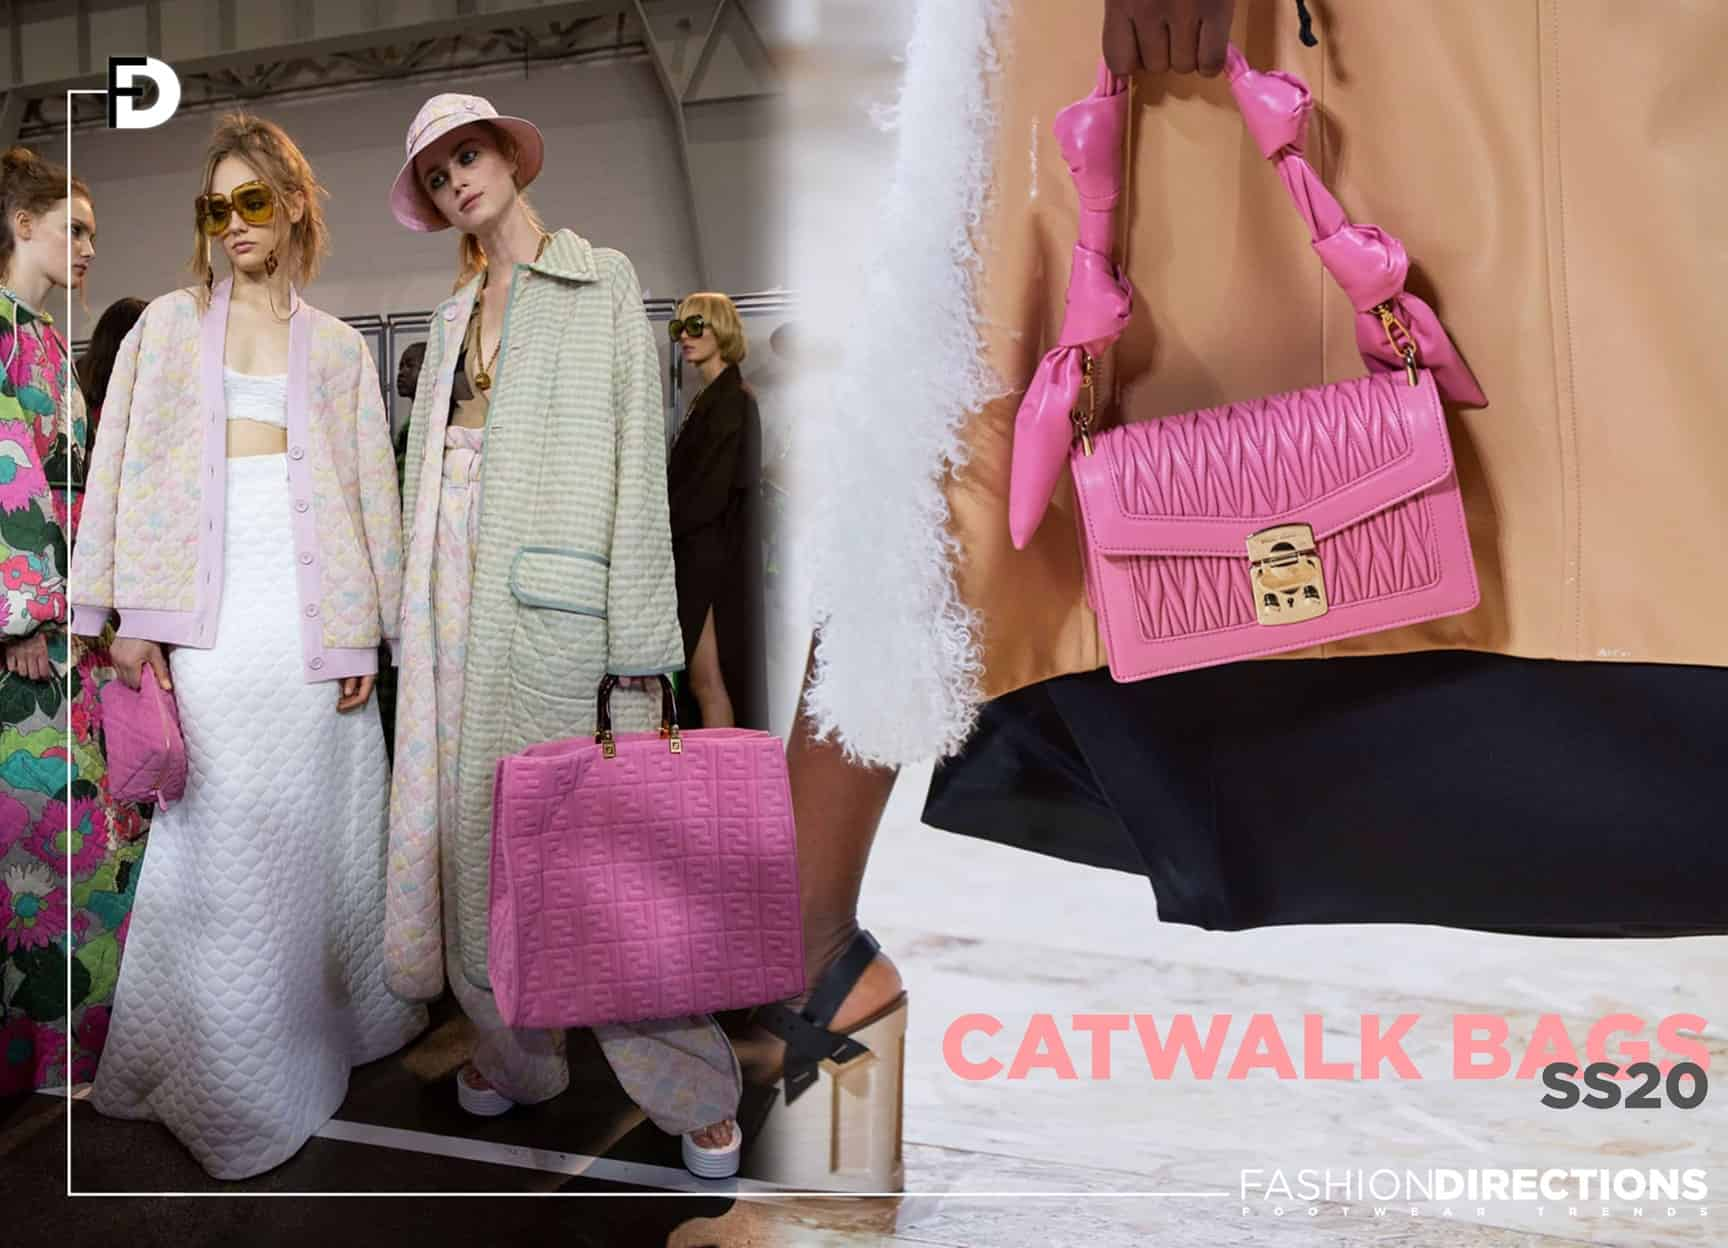 ss20 catwalk bags trends shapes 1